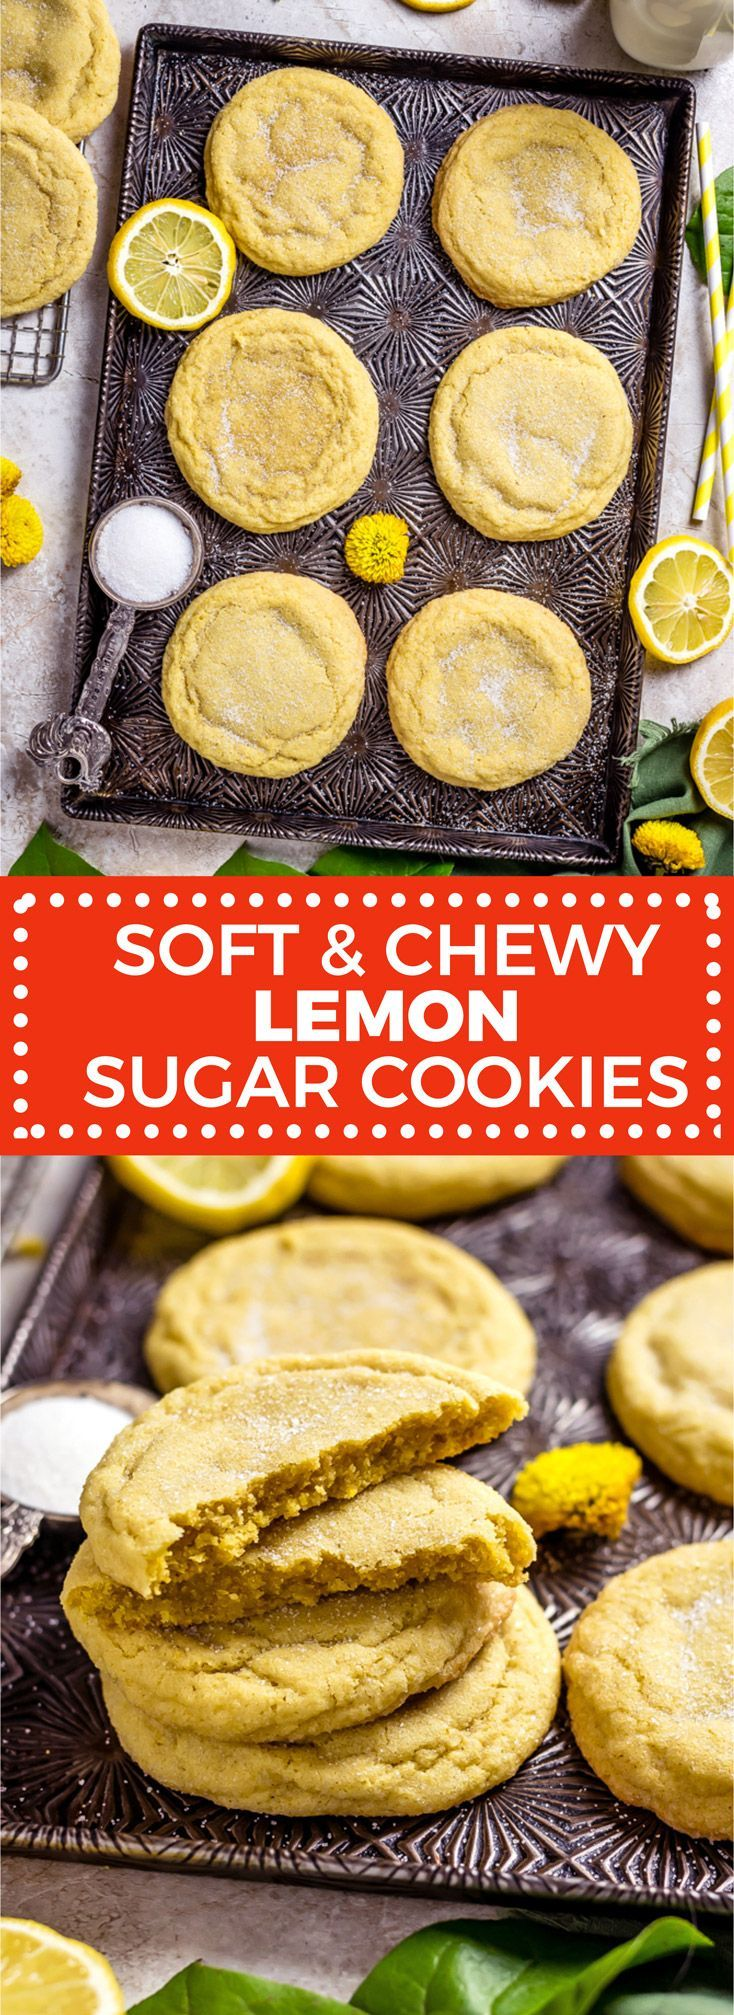 Soft and sweet lemon sugar cookies Soft and sweet lemon sugar cookies